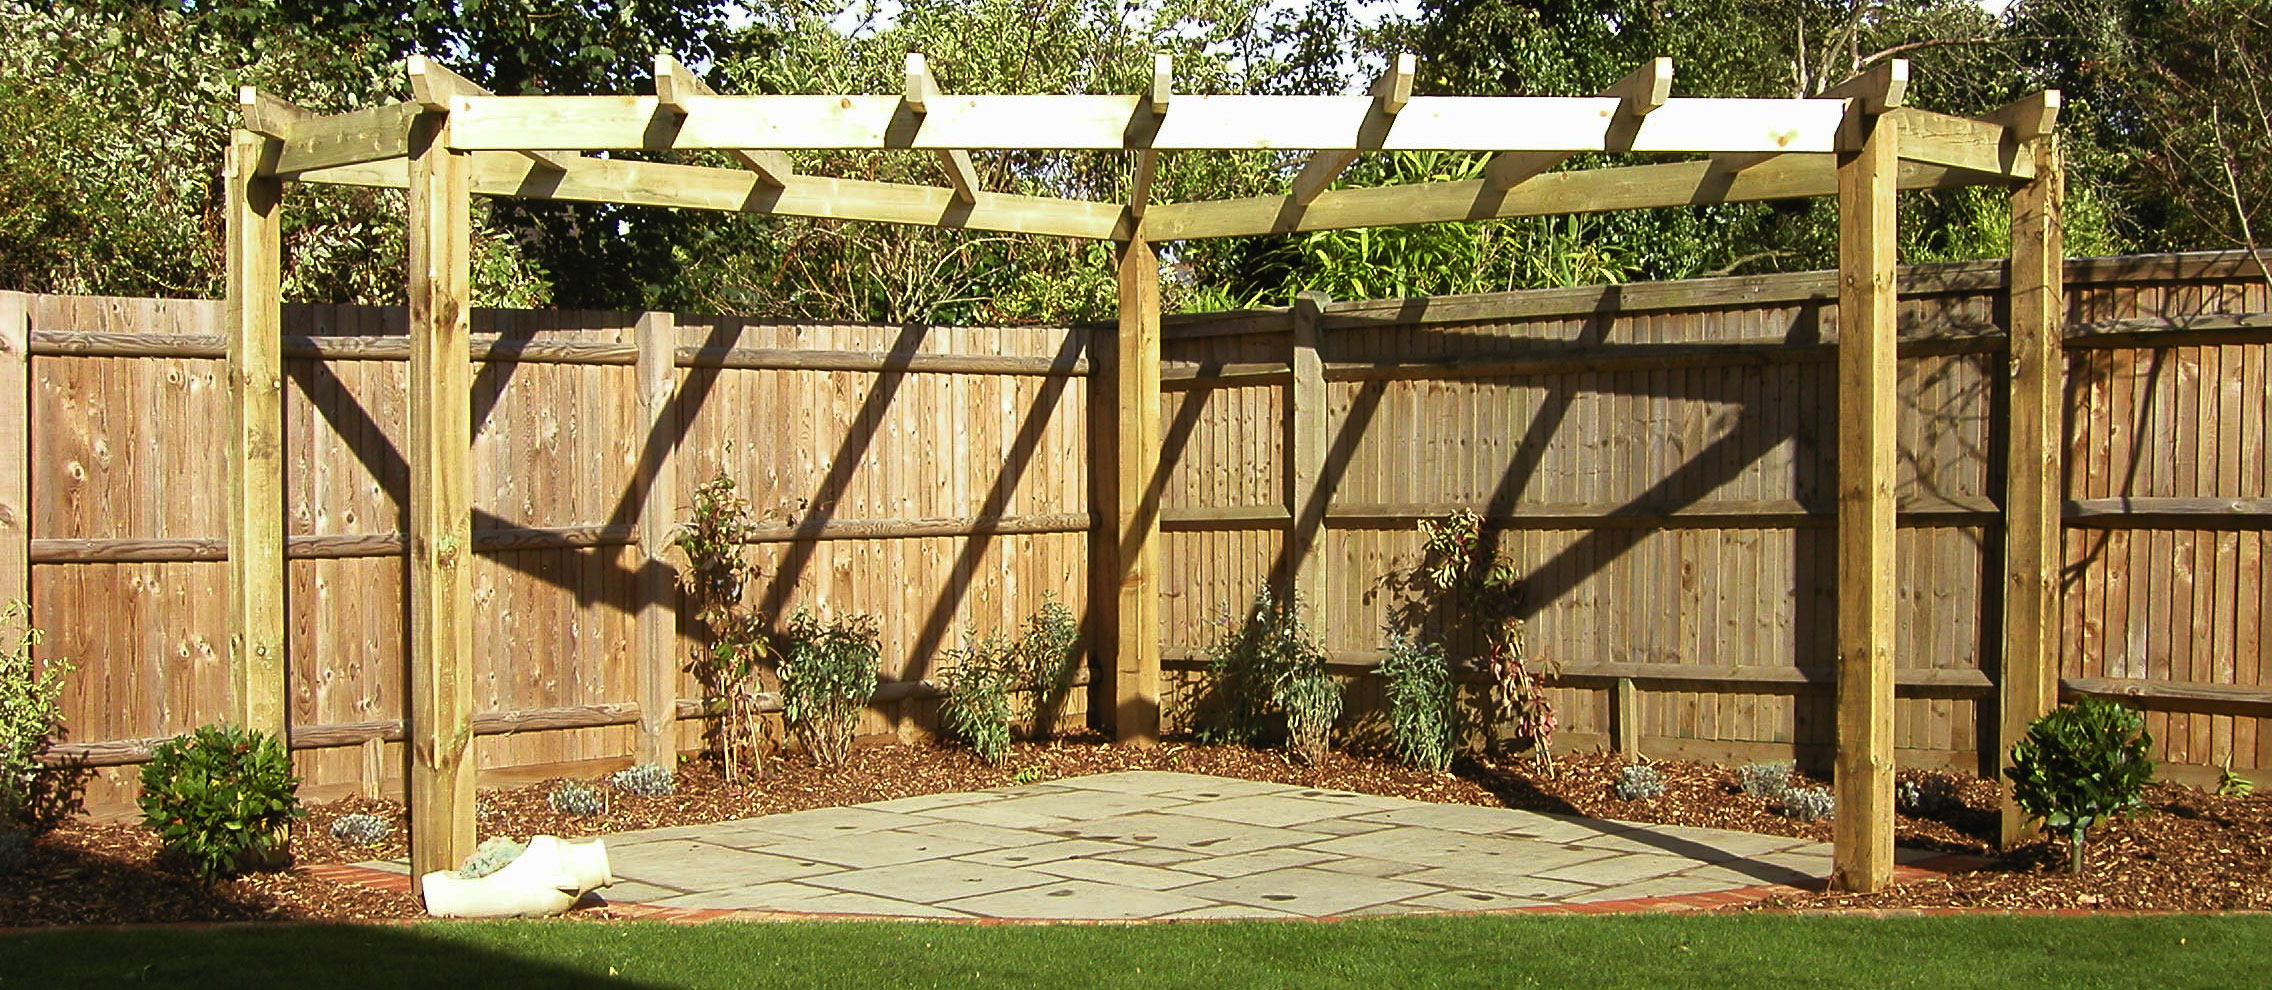 Incroyable Wrights Fencing And Landscaping